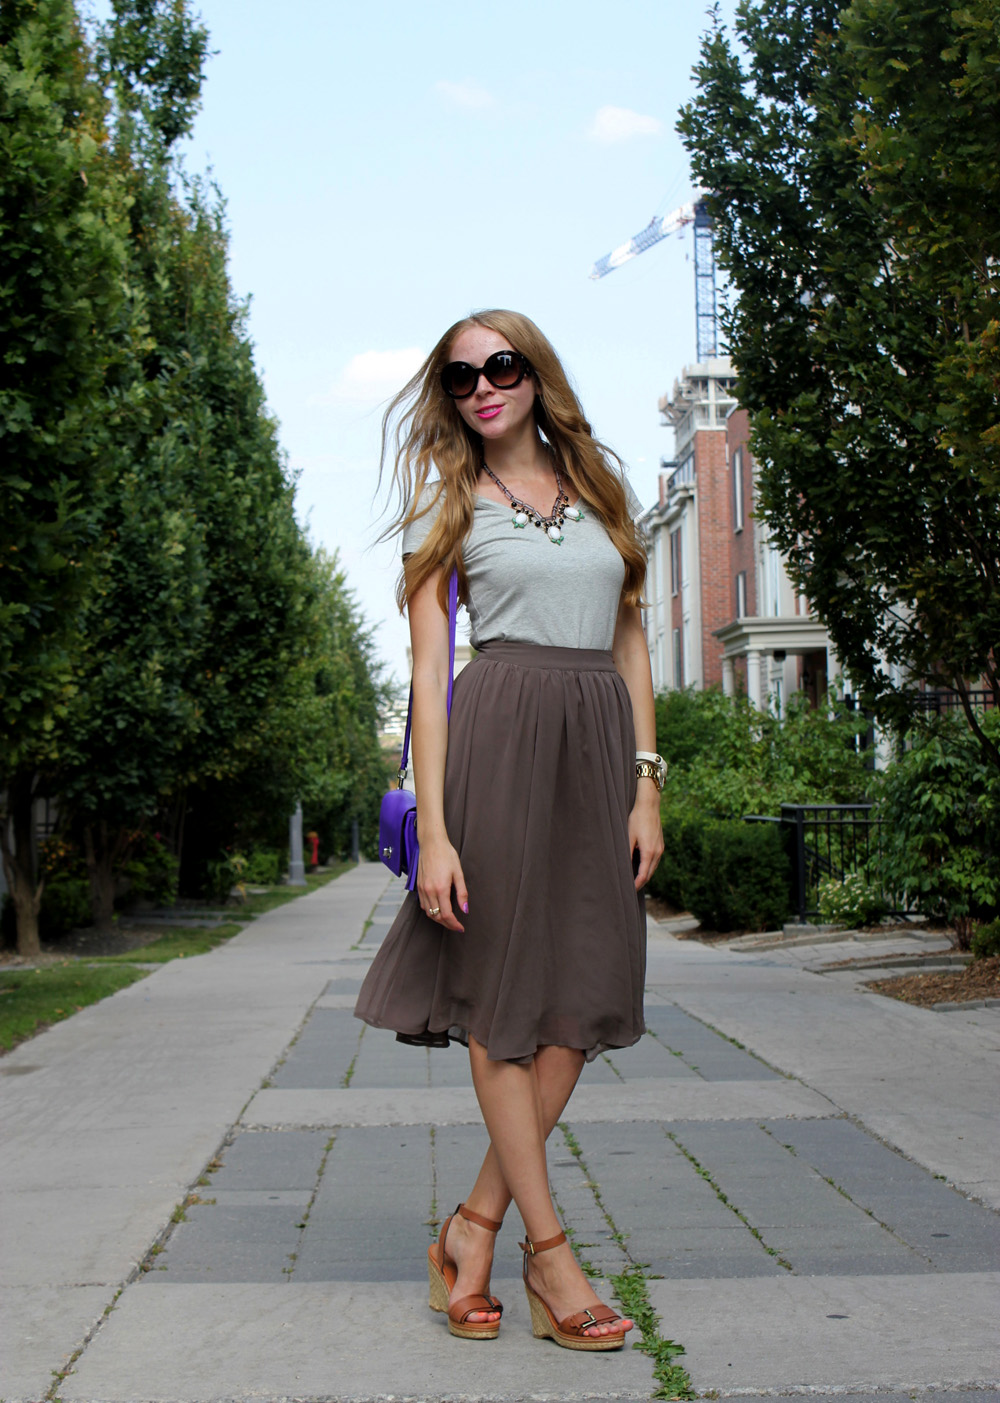 khaki flouncy skirt and tee